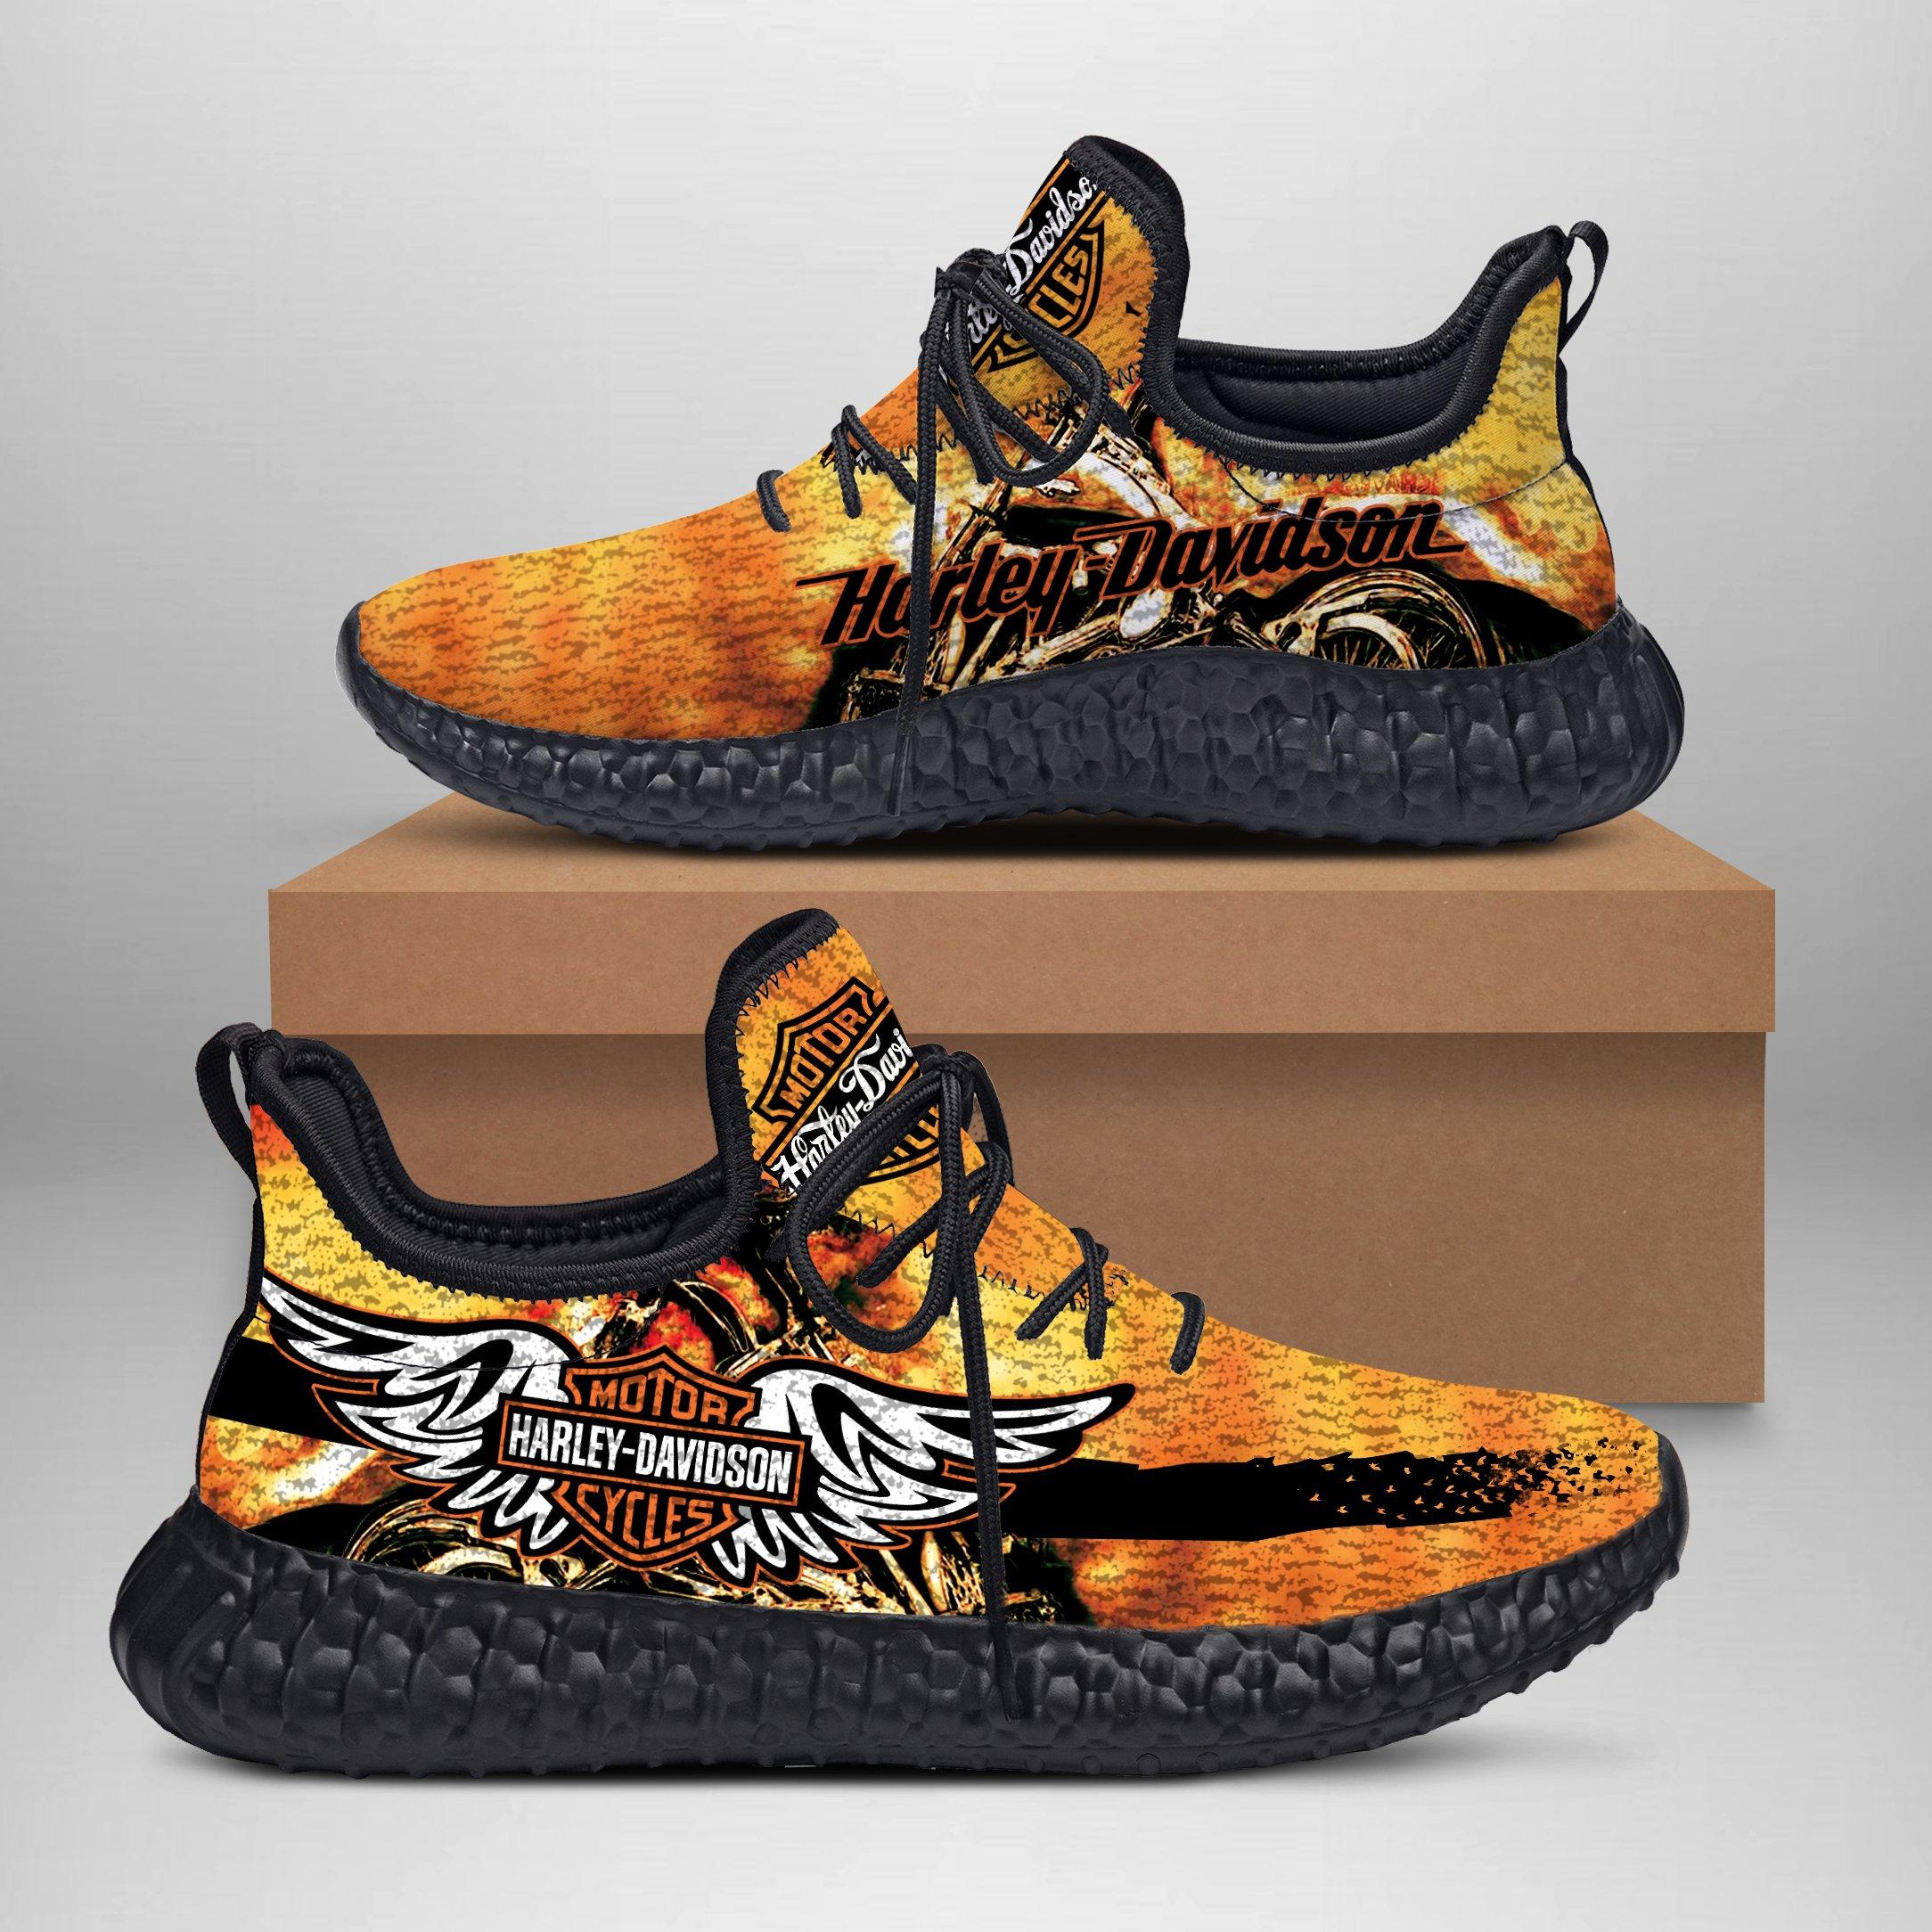 Harley Davidson Yeezy Shoes for Fans